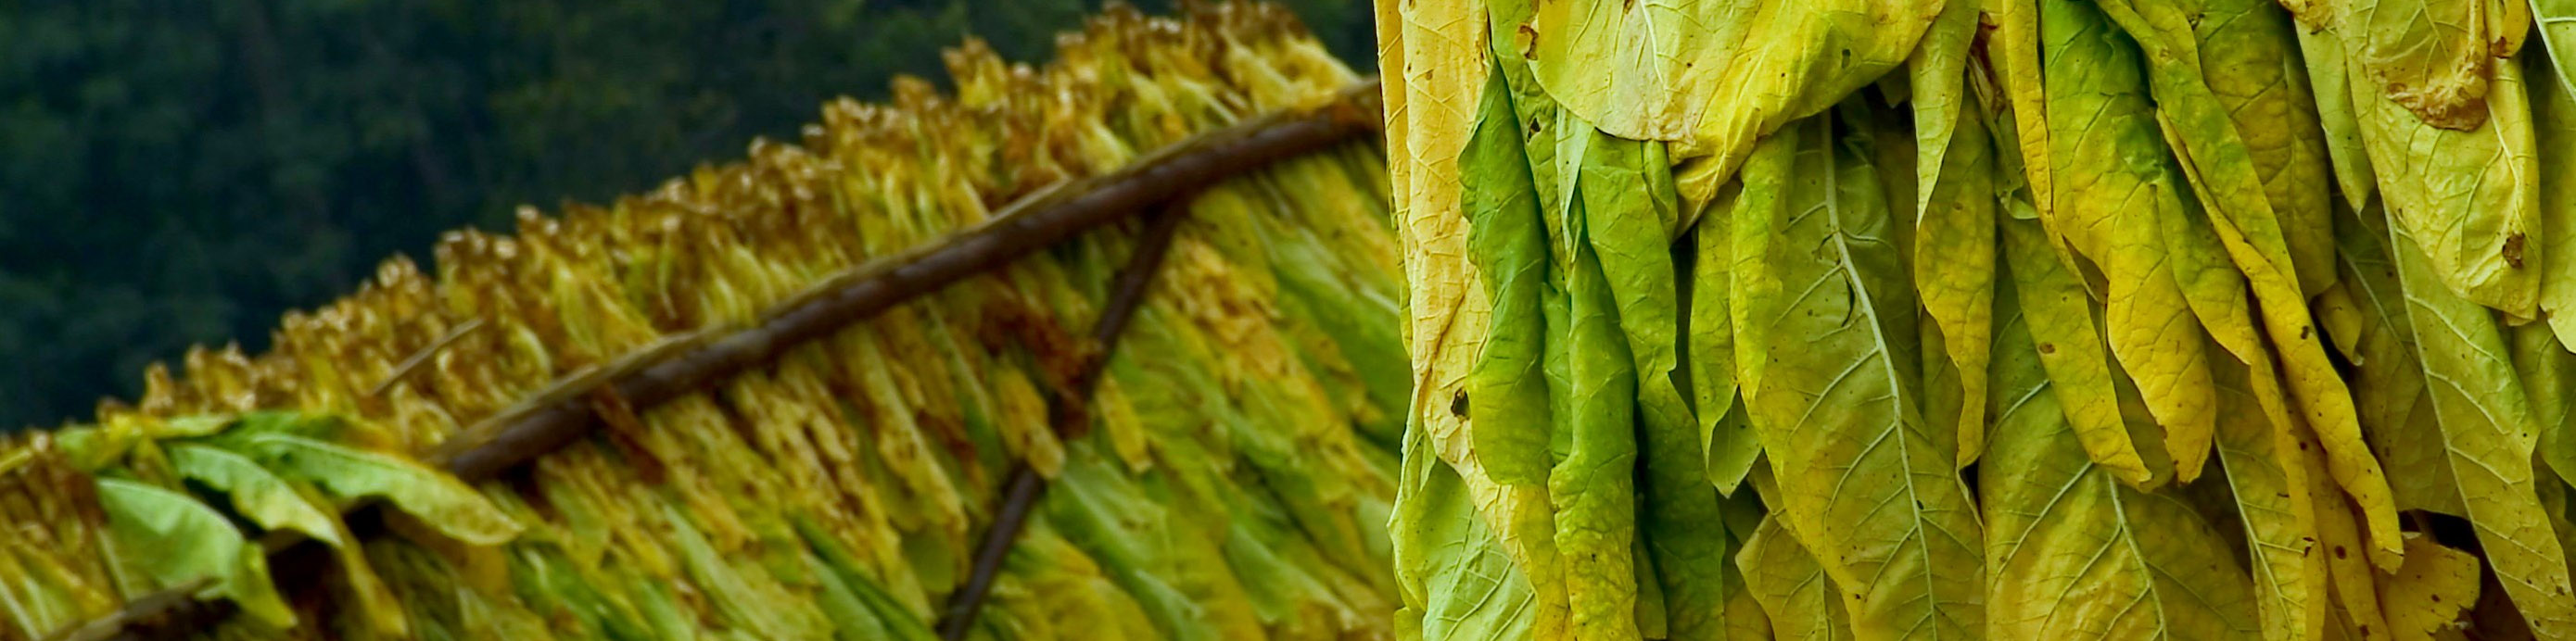 Tobacco leaves hanging in a barn to dry.